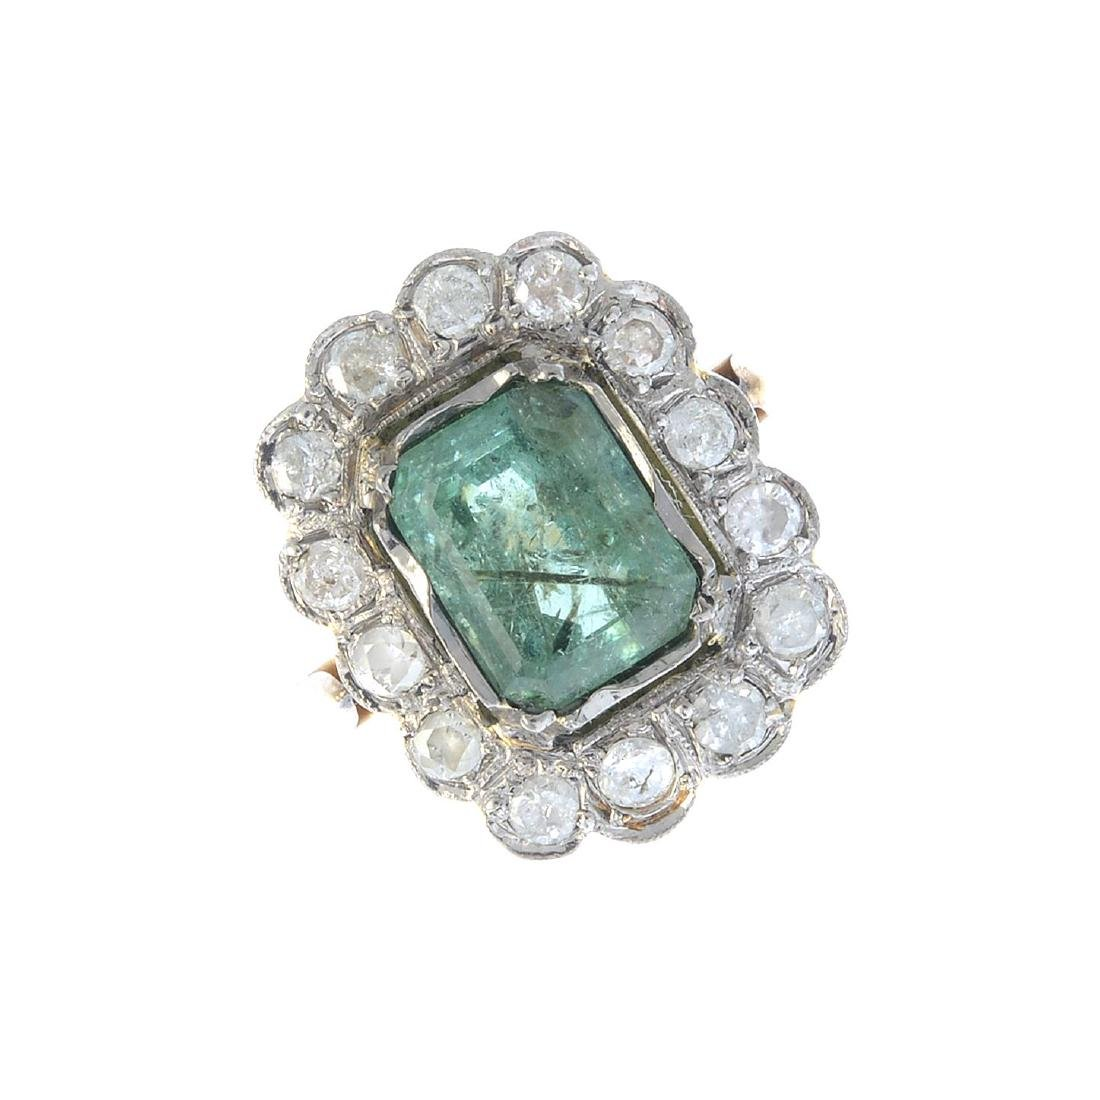 An emerald and diamond cluster ring. The